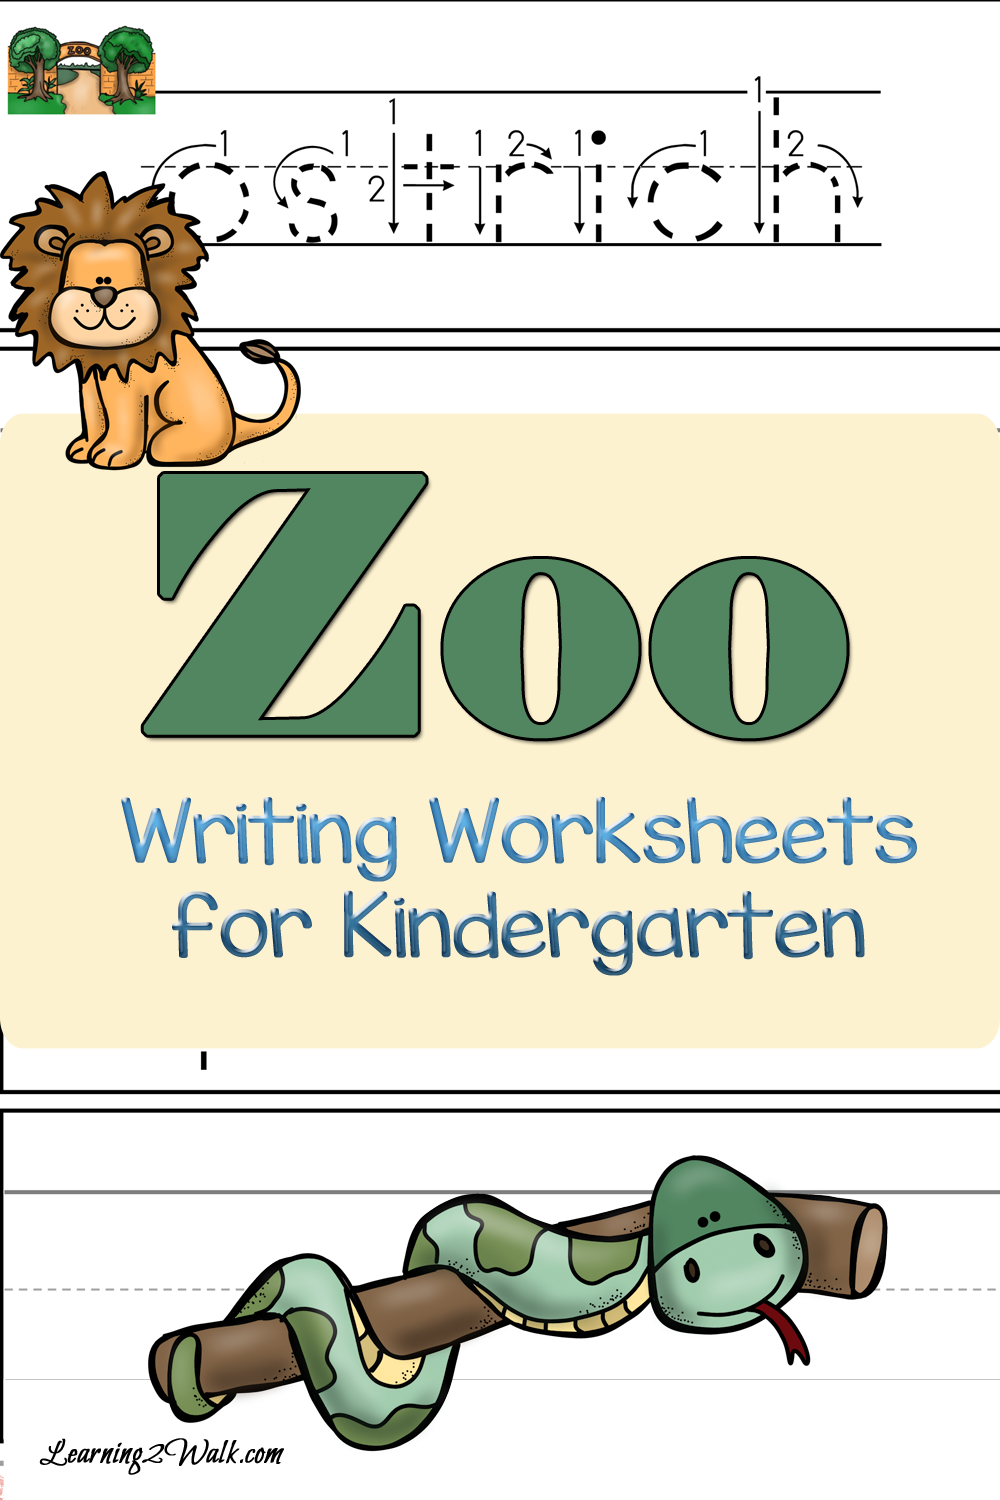 Adorable Zoo Writing Worksheets For Kindergarten To Use Now Kindergarten Worksheets Homeschool Writing Writing Worksheets [ 1500 x 1000 Pixel ]